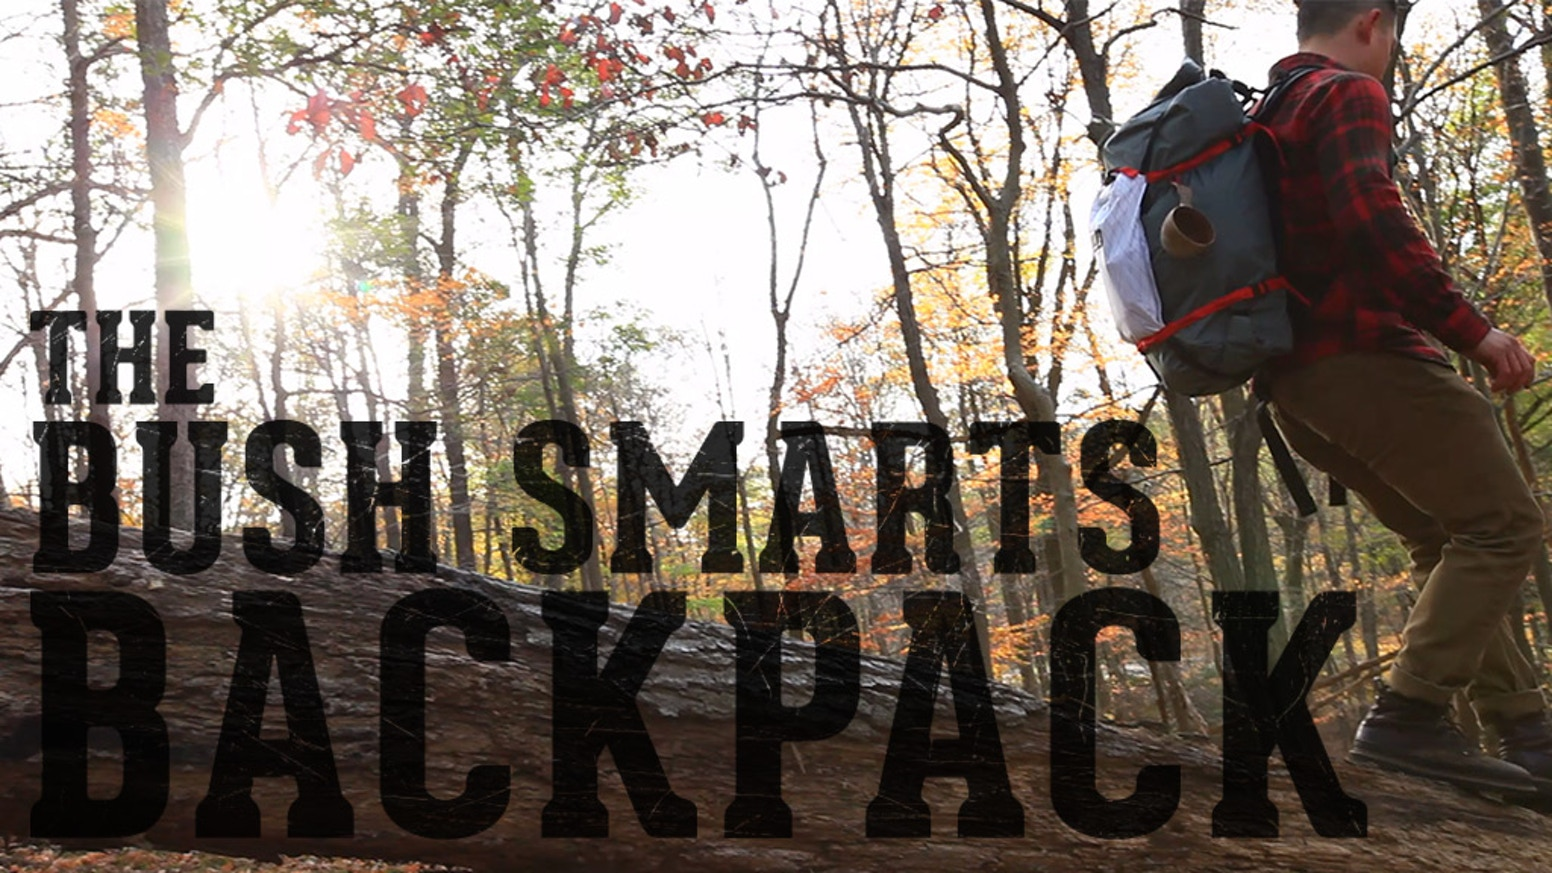 Introducing a simple, lightweight backpack that's rugged, waterproof and holds all your gear for a weekend adventure. Made in the USA.